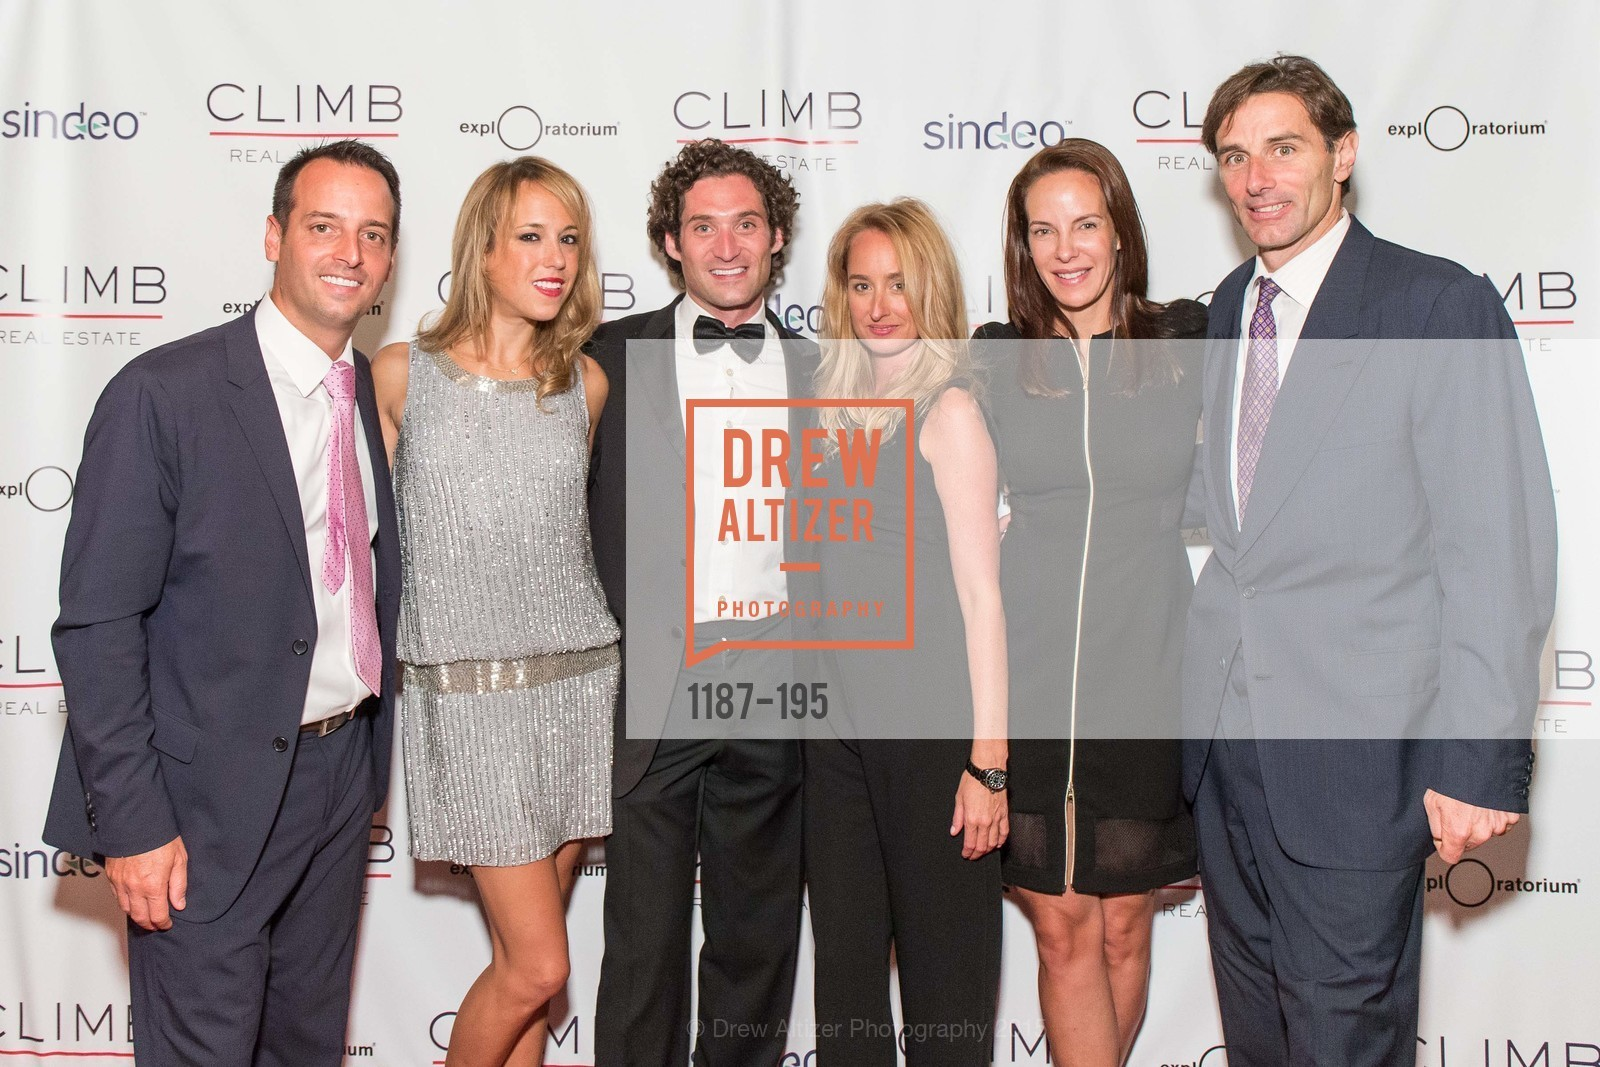 Joe Alioto Veronese, Alexandra Duisberg, Justin Fichelson, Nicole Bulick, Julie Veronese, Paul Pelosi Jr., Climb Real Estate and Sindeo Celebrate the Launch of Million Dollar Listing San Francisco, Local Edition San Francisco. 691 Market St, July 8th, 2015,Drew Altizer, Drew Altizer Photography, full-service agency, private events, San Francisco photographer, photographer california